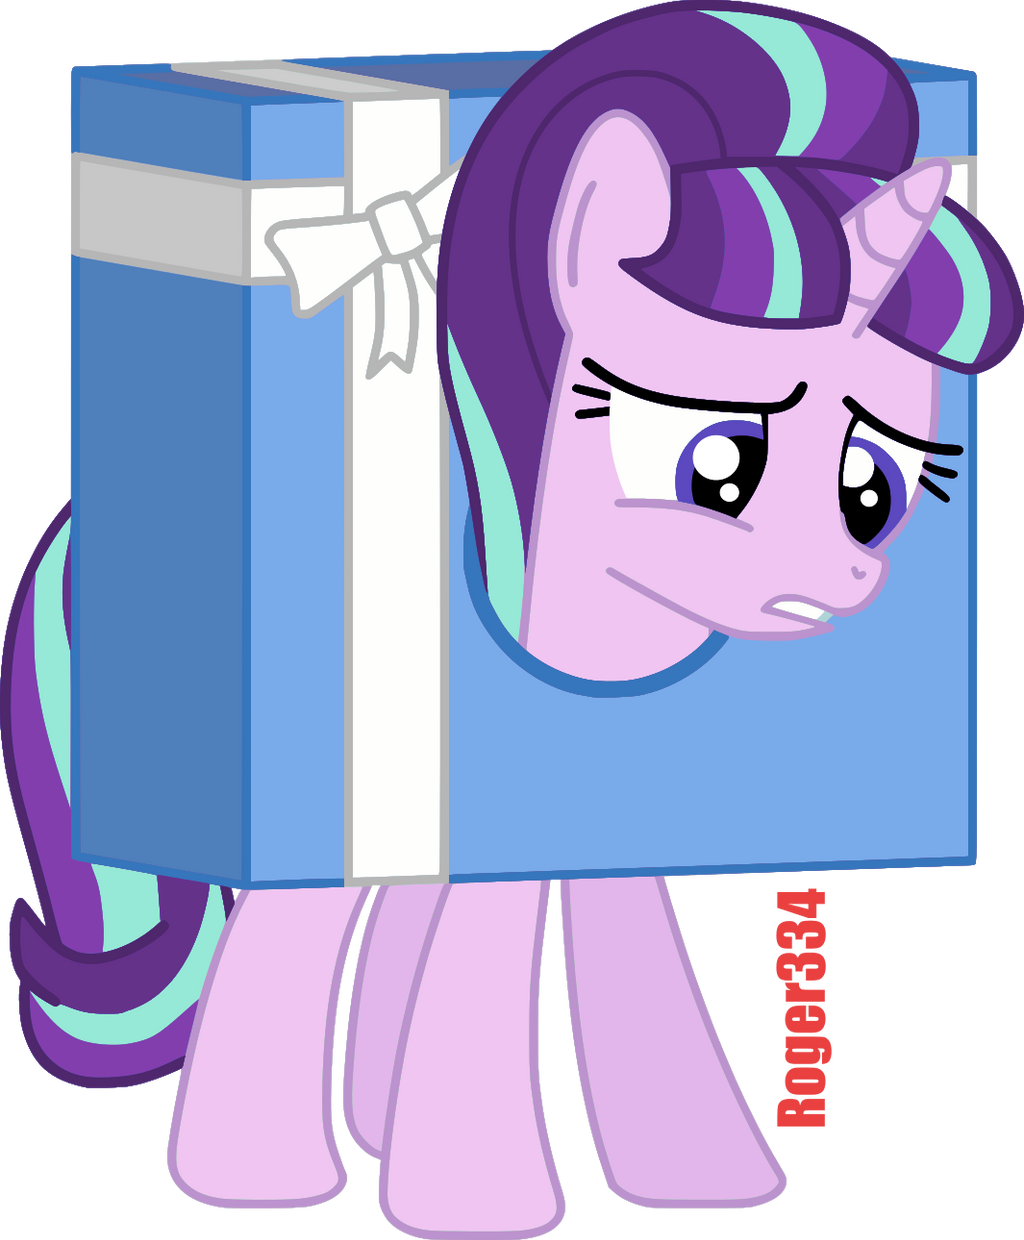 One Special Gift by Roger334